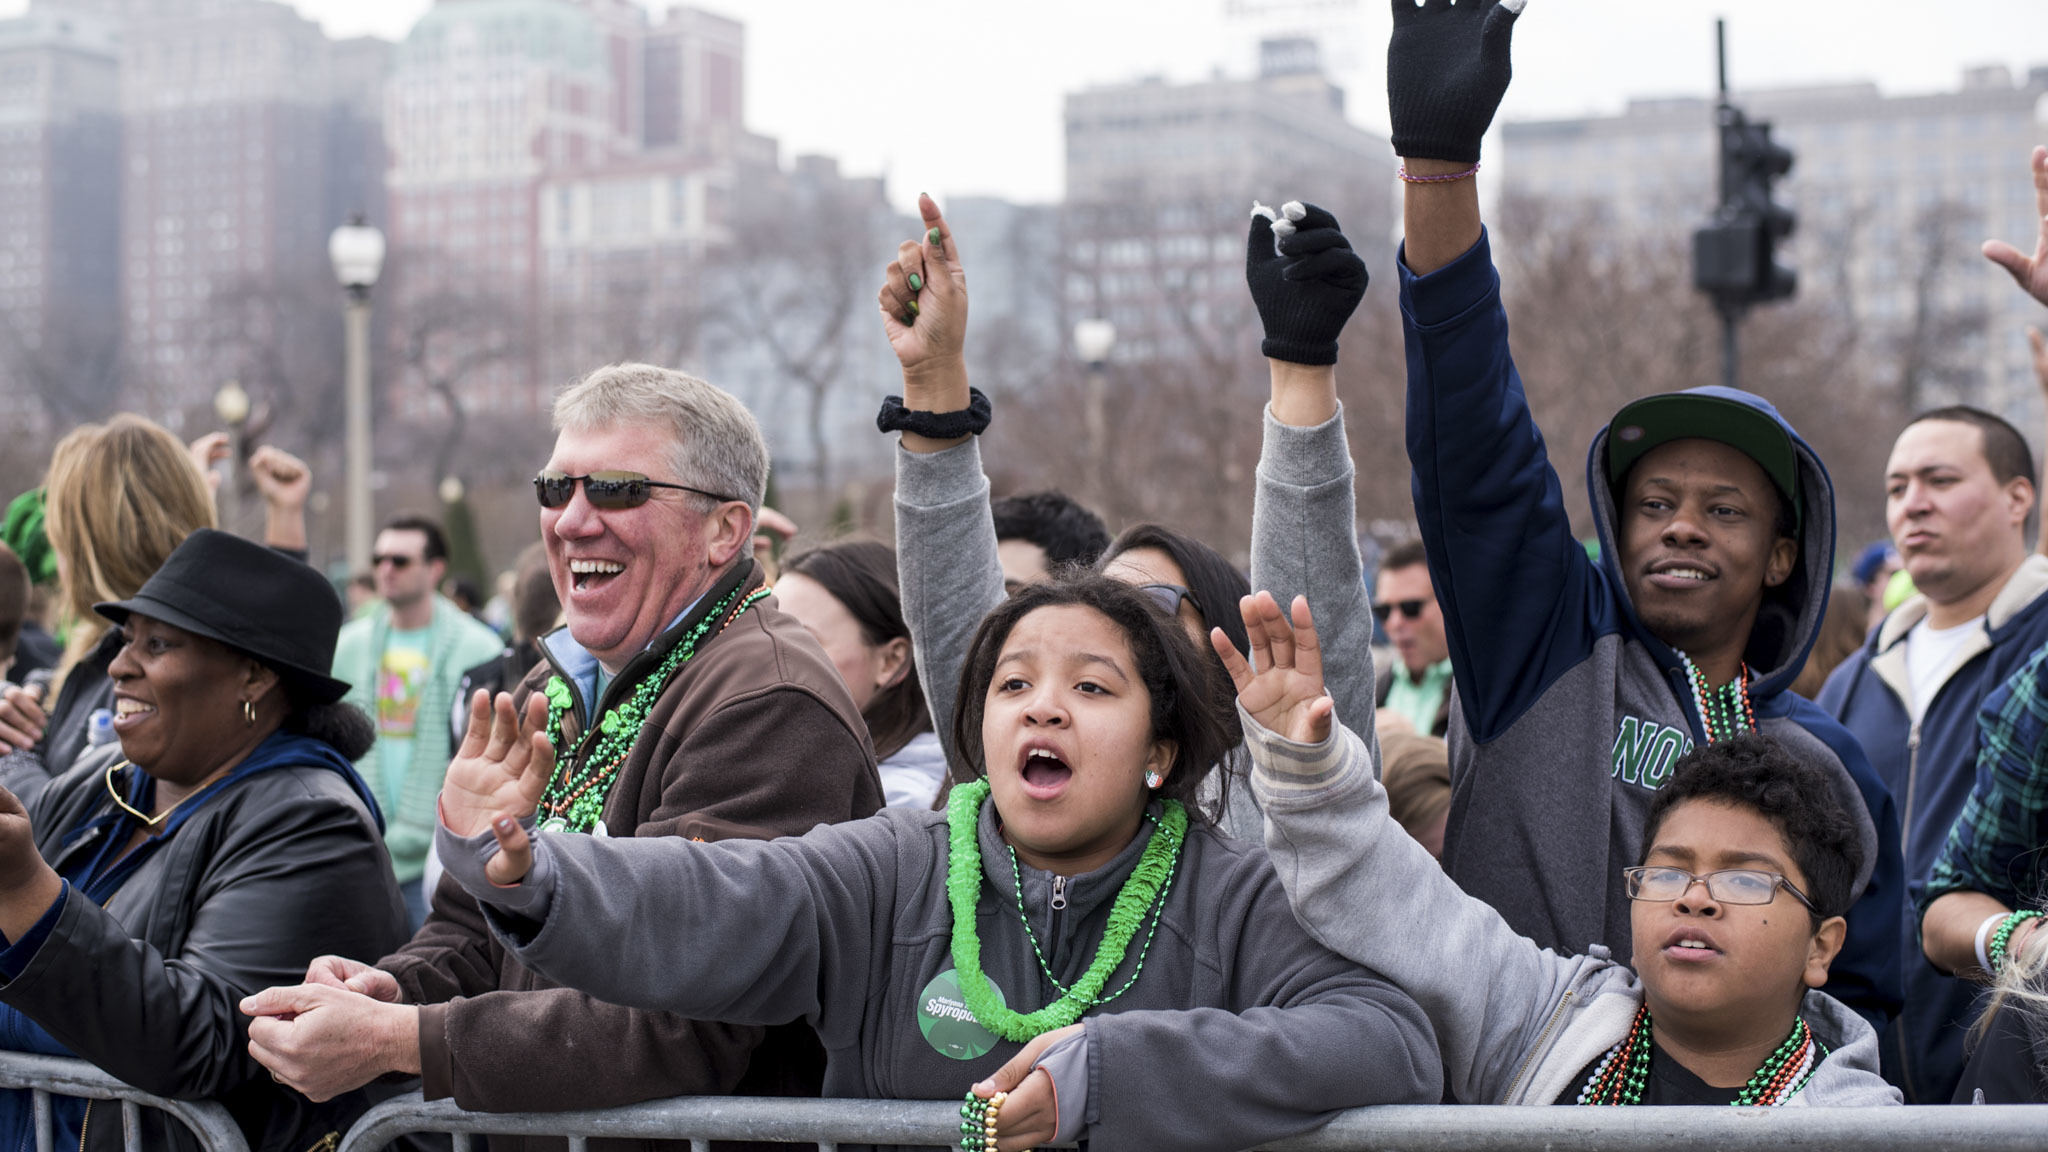 St. Patrick's Day River Dye & Parade, March 12, 2016